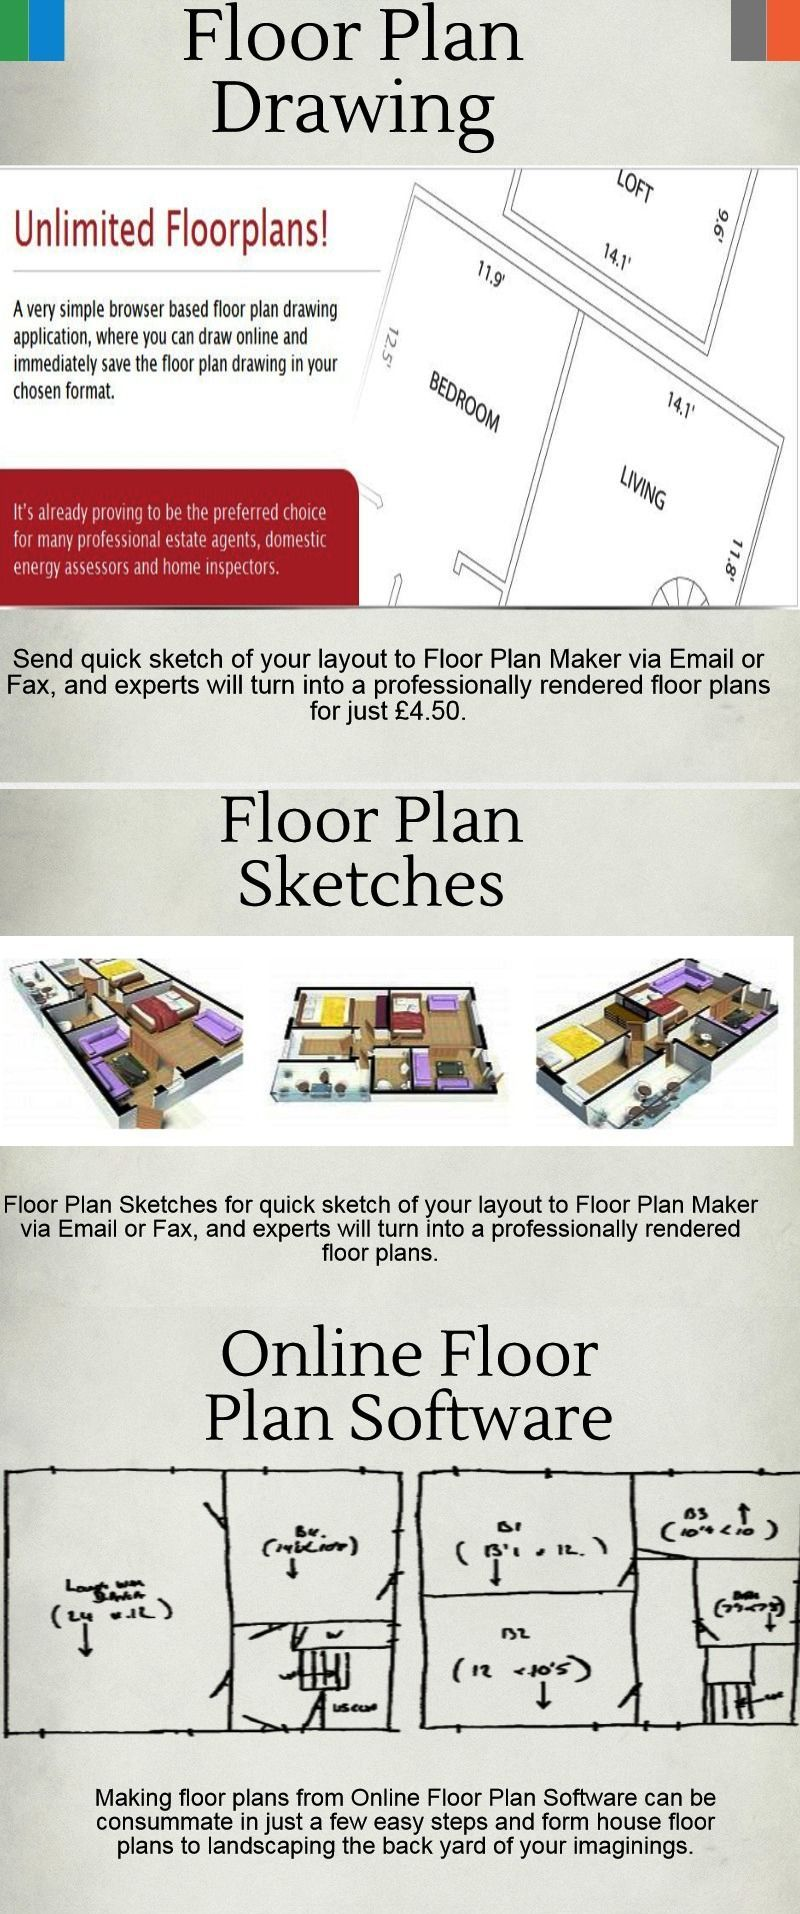 3d Floor Plan Online To Draw Online The Stylish 3d Floor Plans For Your Property Draw Floor Online P Floor Plans Online Floor Plan Drawing Online Drawing